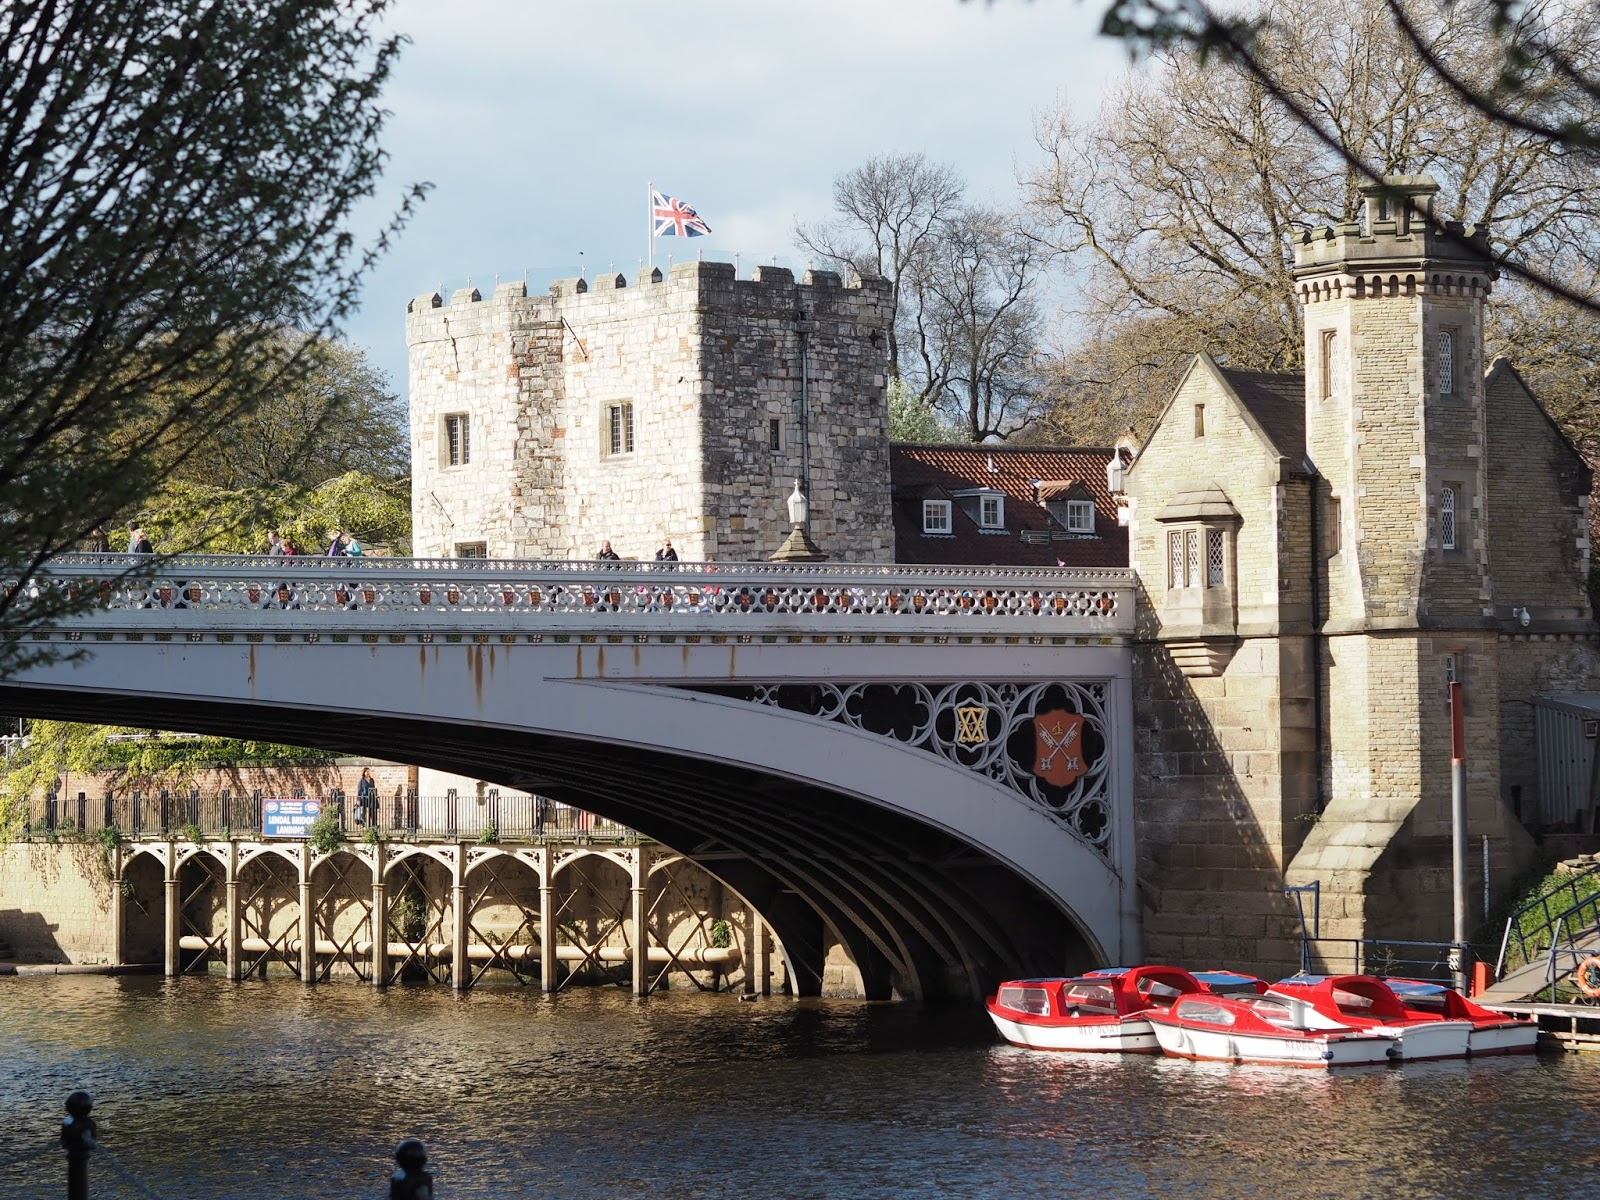 River Ouse and bridges, York